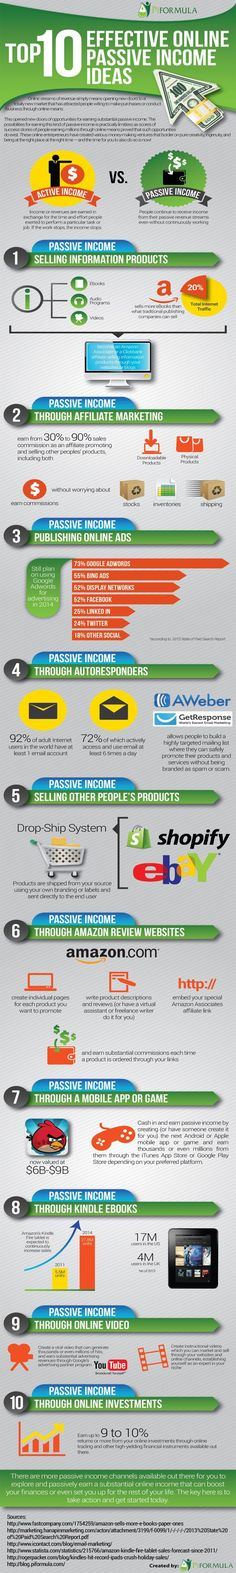 10 Effective Online Passive Income Ideas #infographic